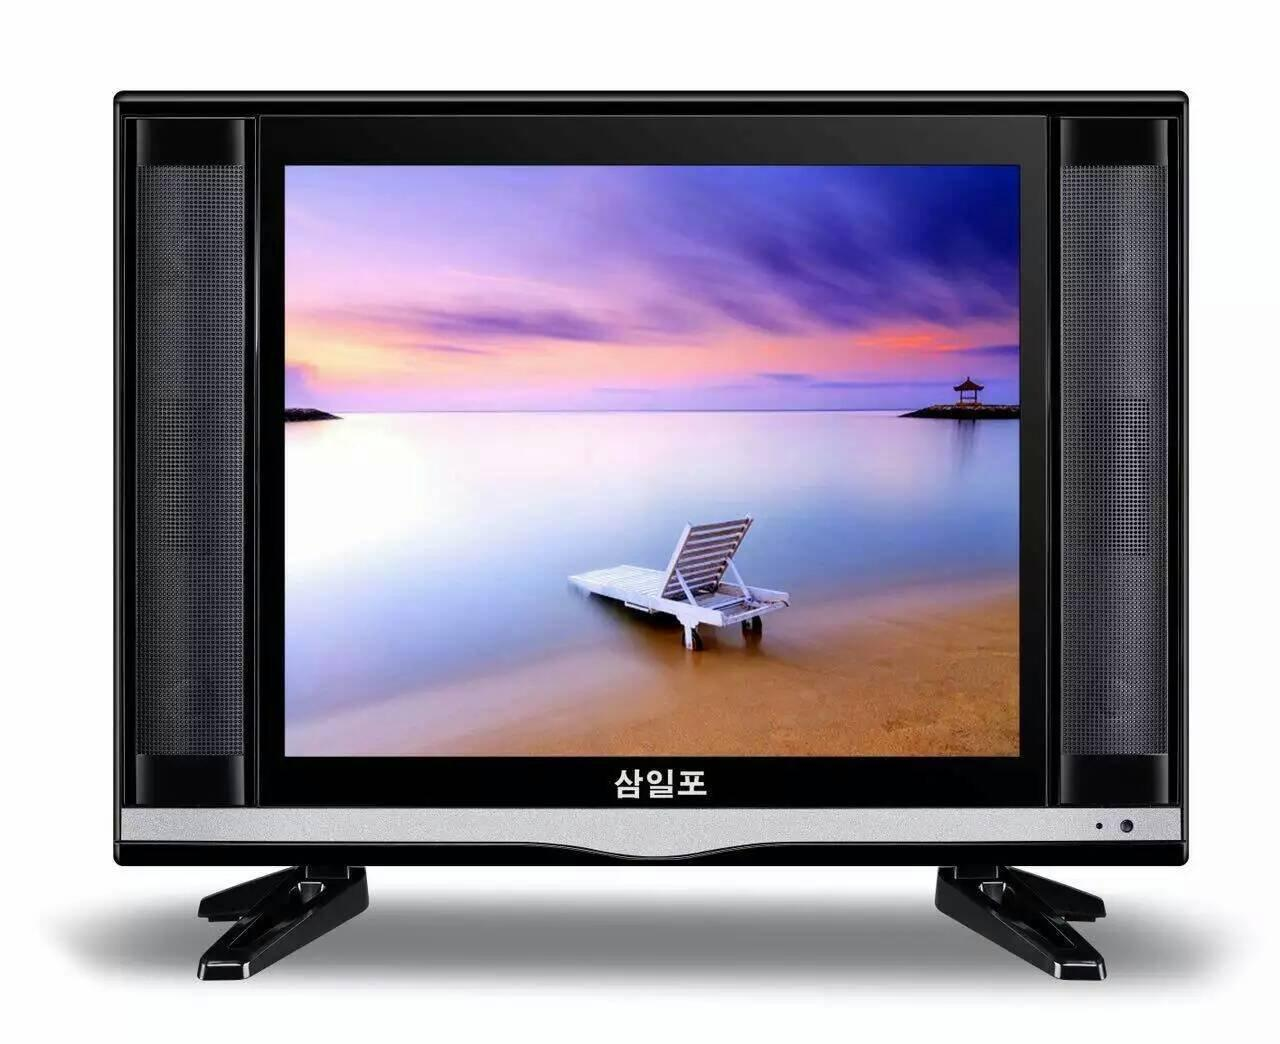 Xinyao LCD 17 inch flat screen tv fashion design for lcd screen